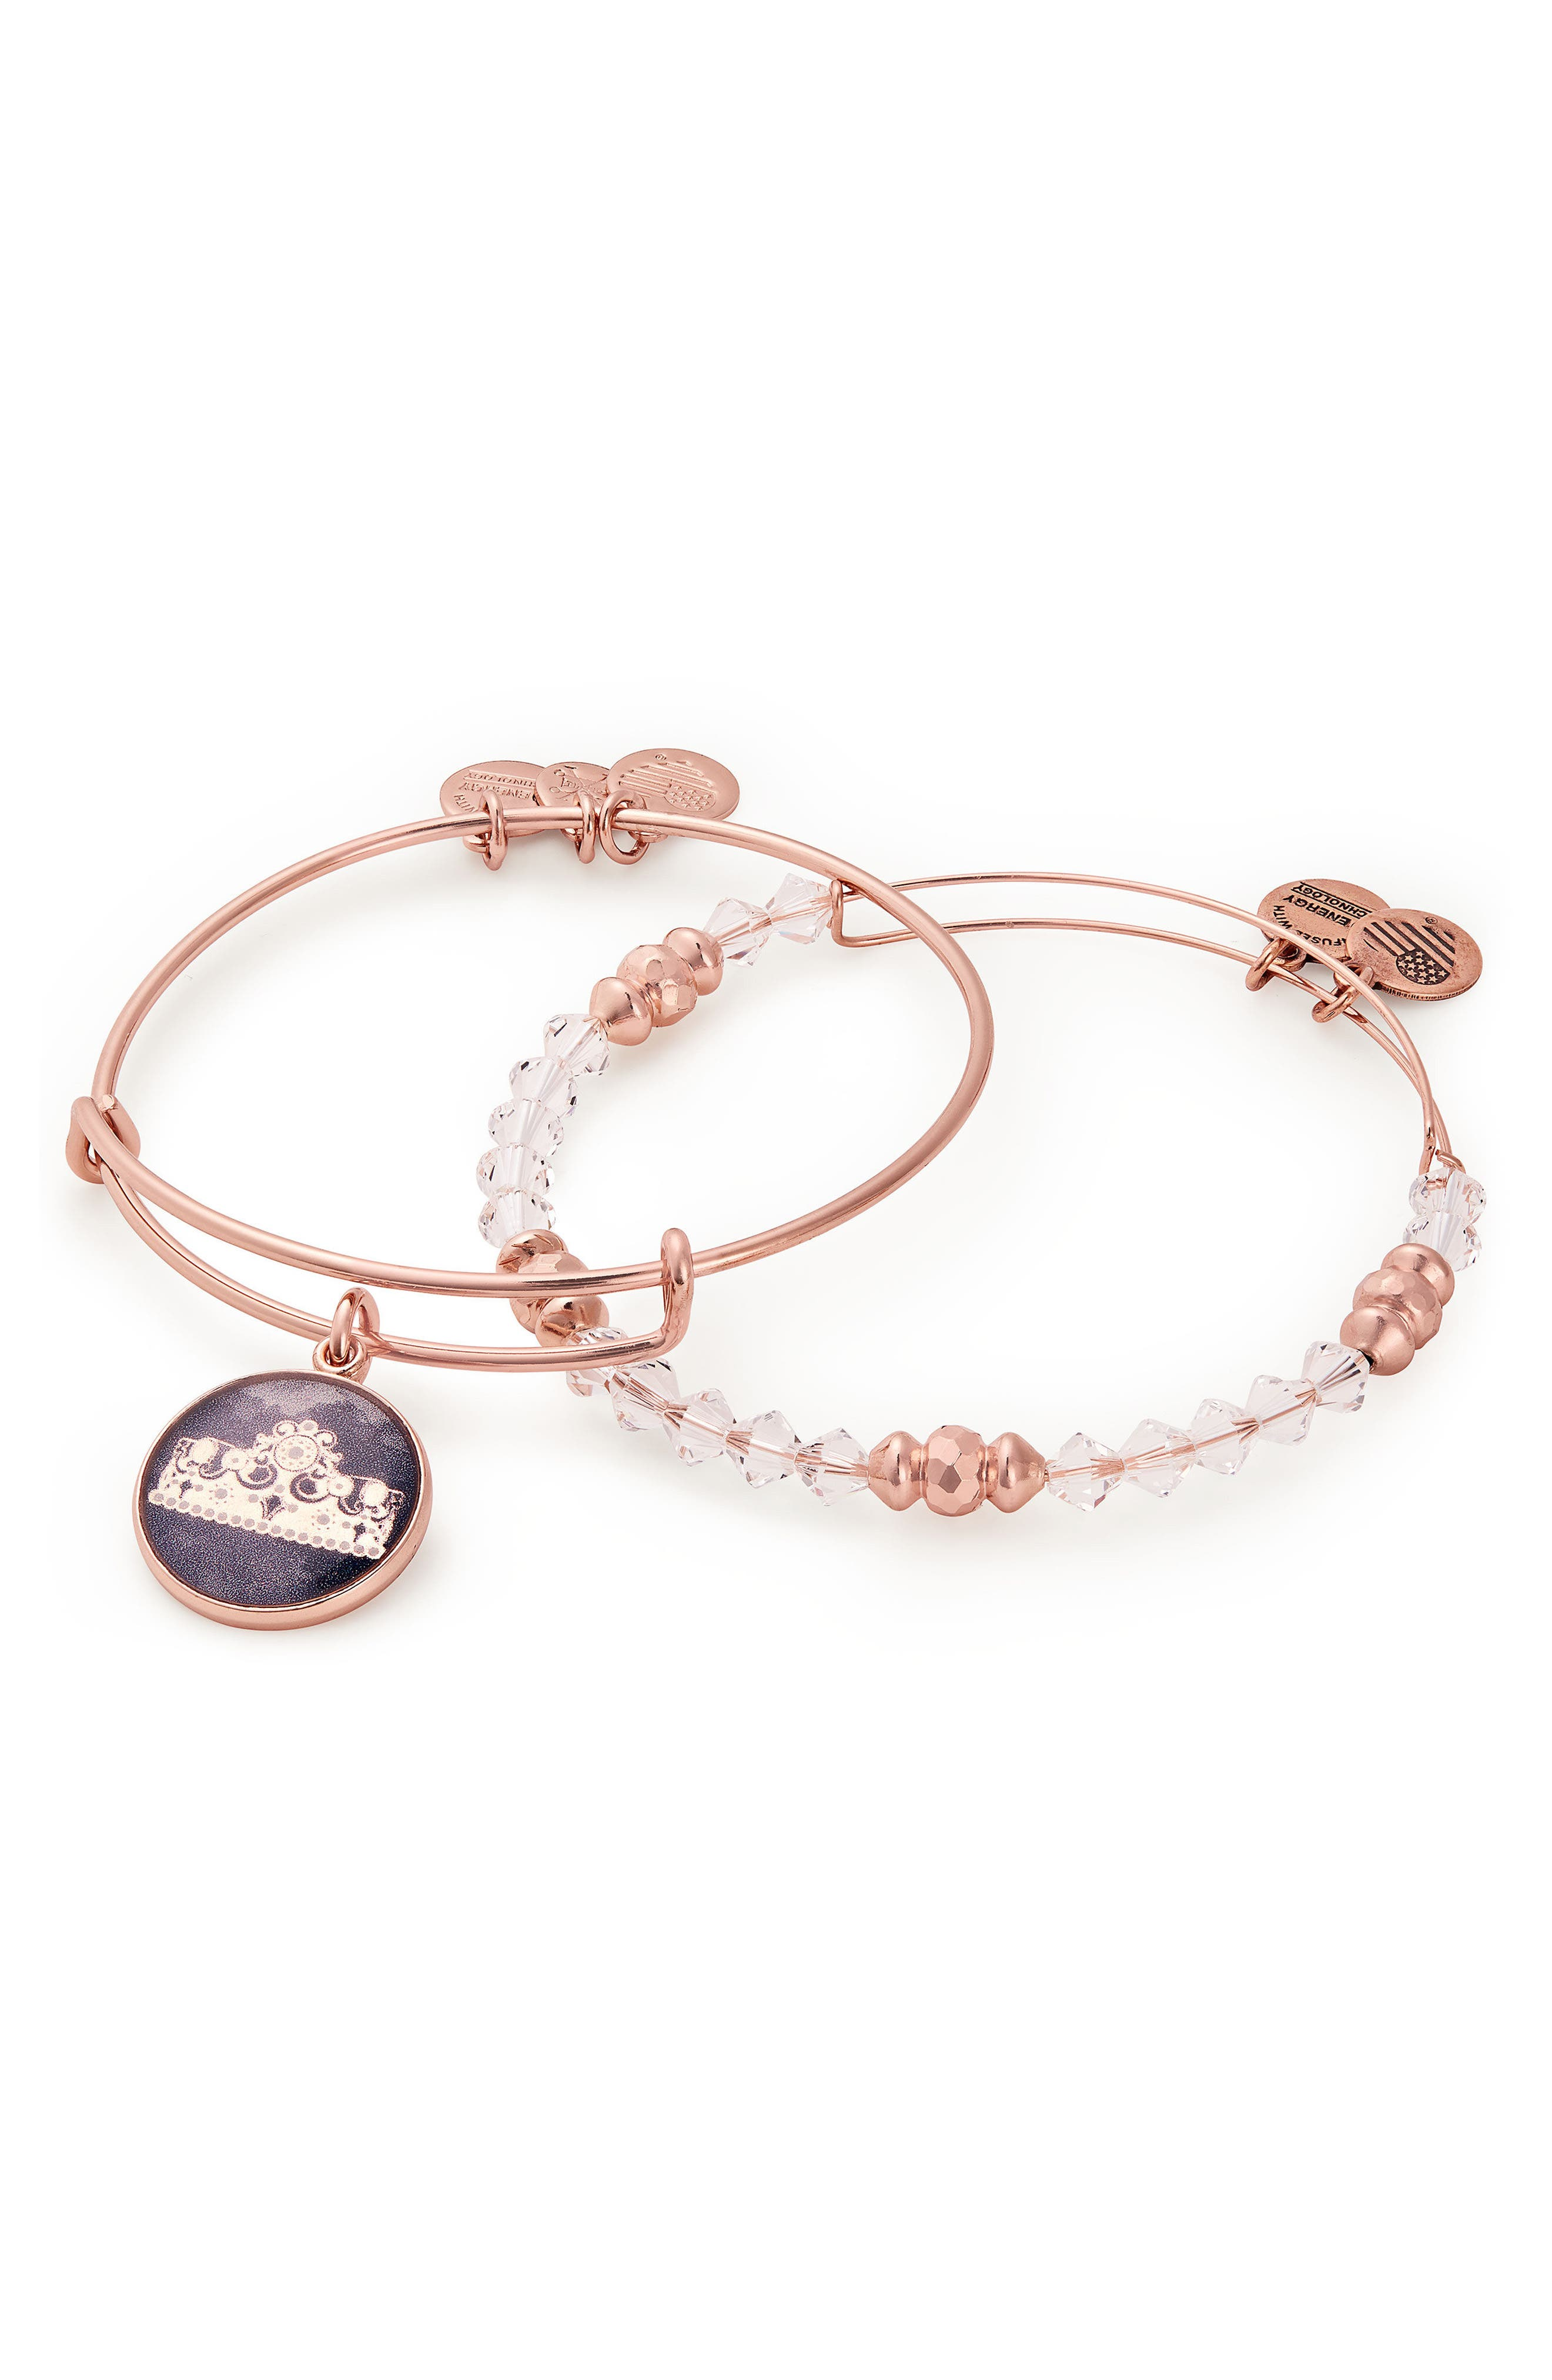 Queen's Crown Set of 2 Adjustable Wire Bangles,                         Main,                         color, 689